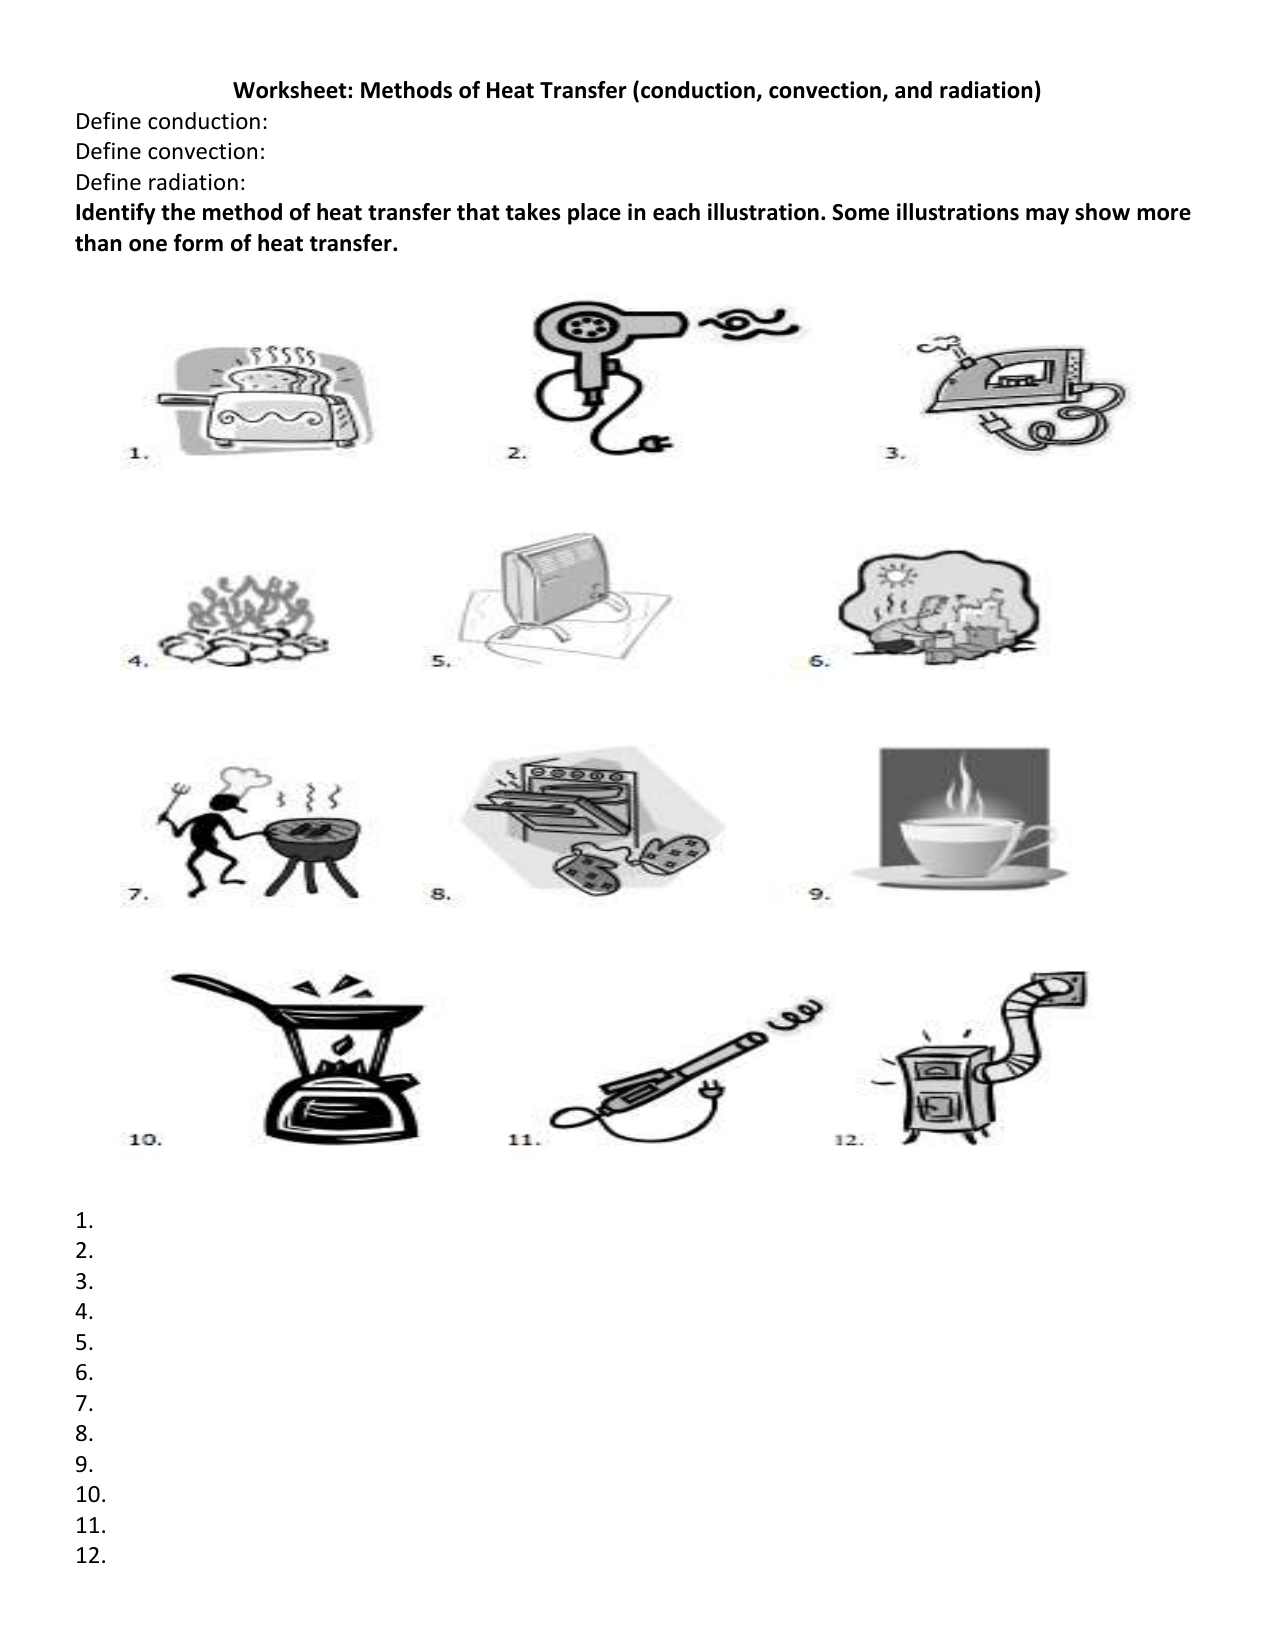 worksheet Worksheet Methods Of Heat Transfer Answers methods of heat transfer worksheet